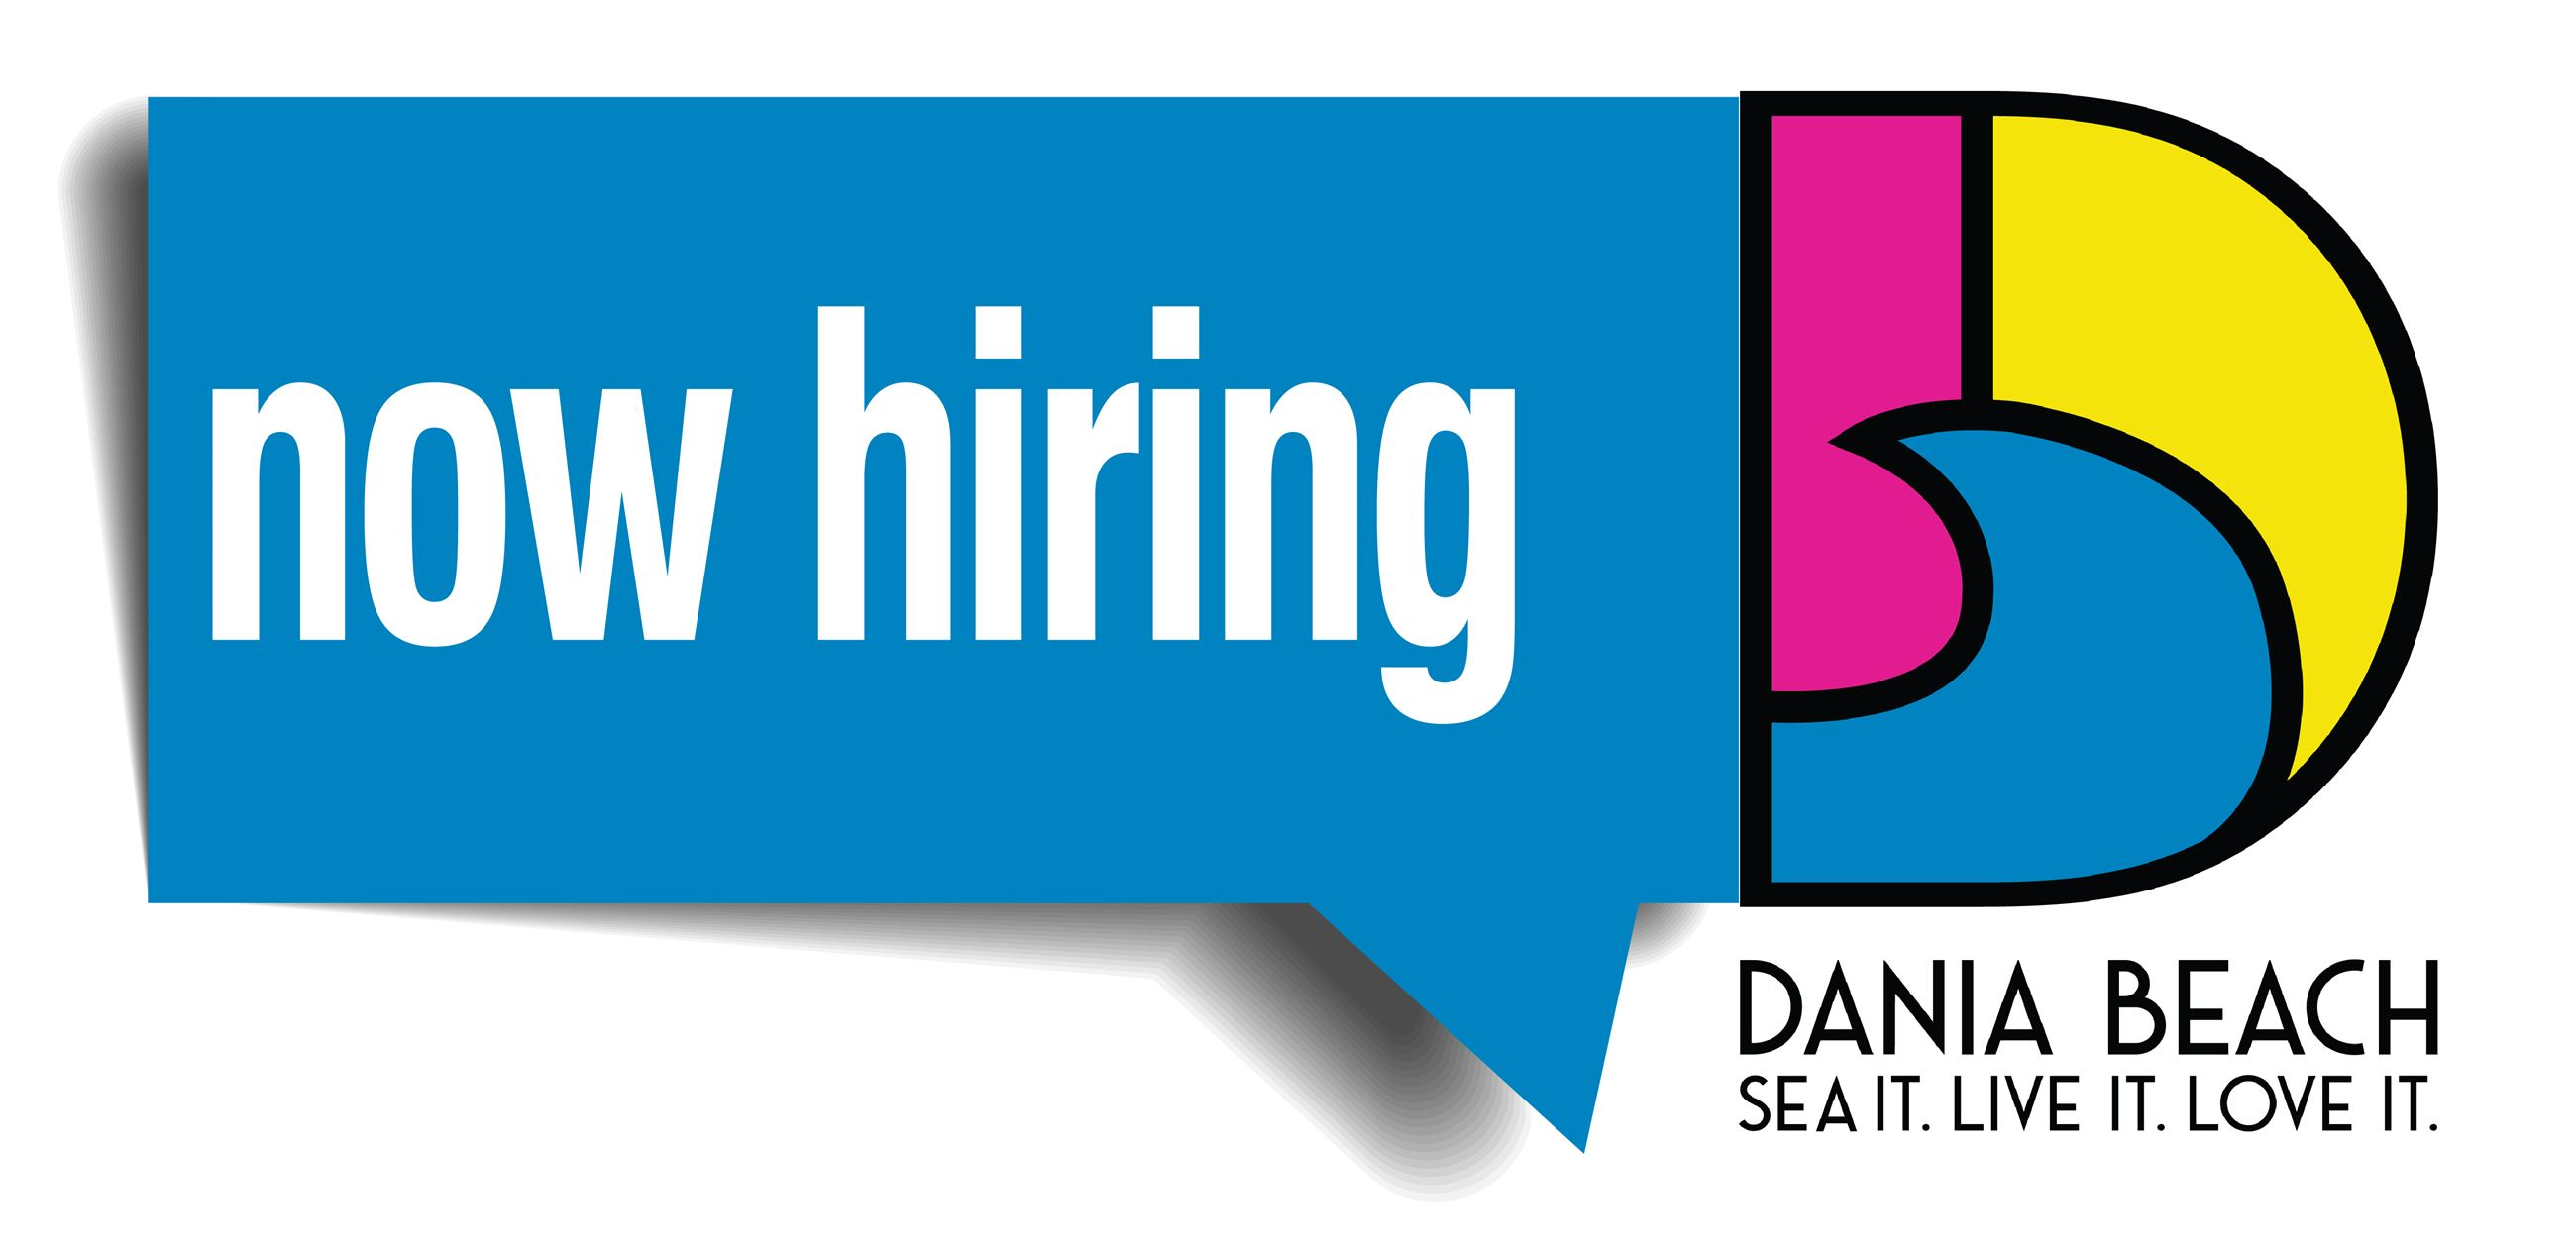 Dania Beach Now Hiring Career Opportunities